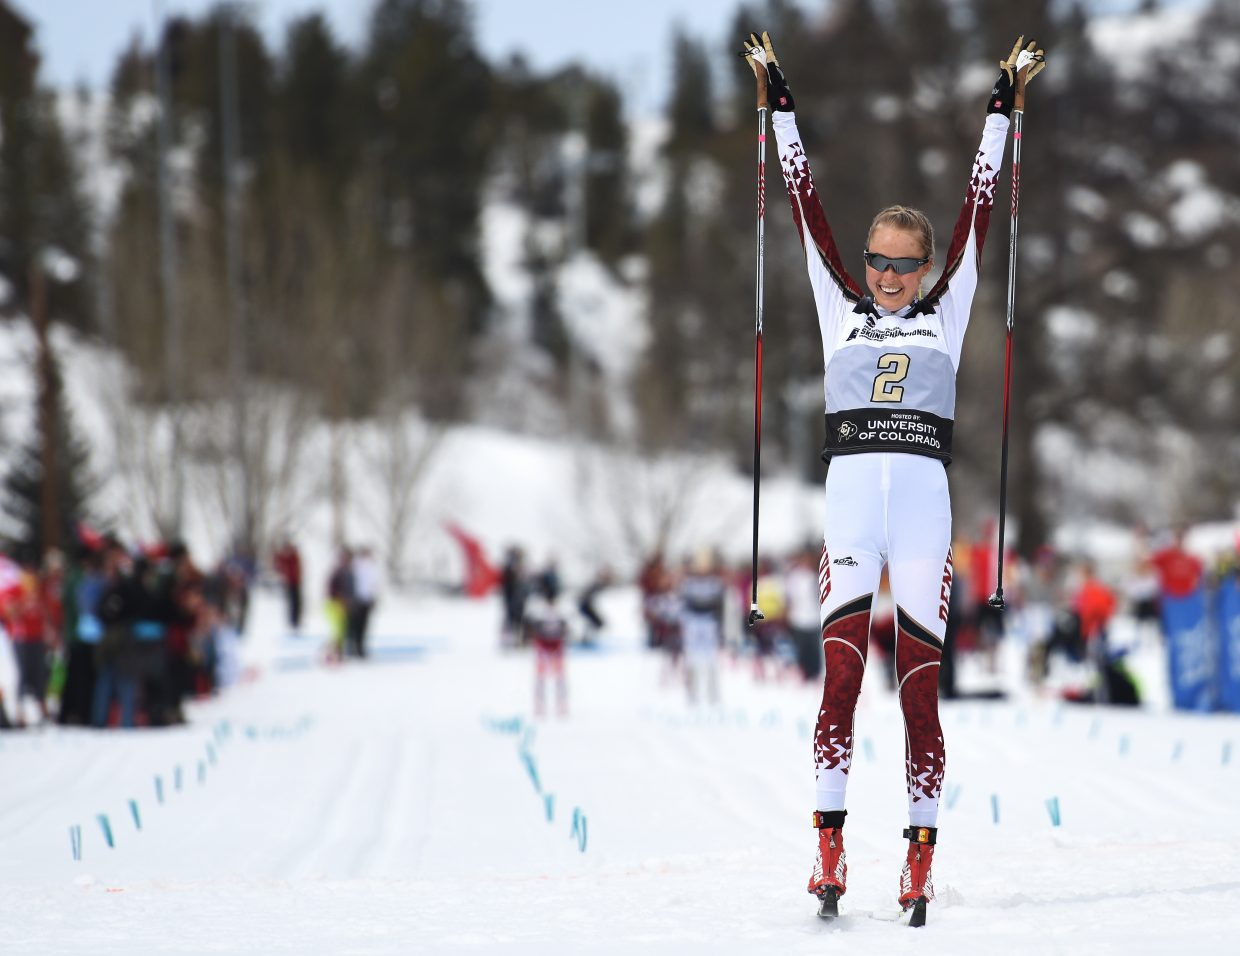 DU's Linn Eriksen throws up her arms after winning the women's 15-kilometer classic skiing Nordic race at the NCAA Skiing Championship Steamboat Springs.